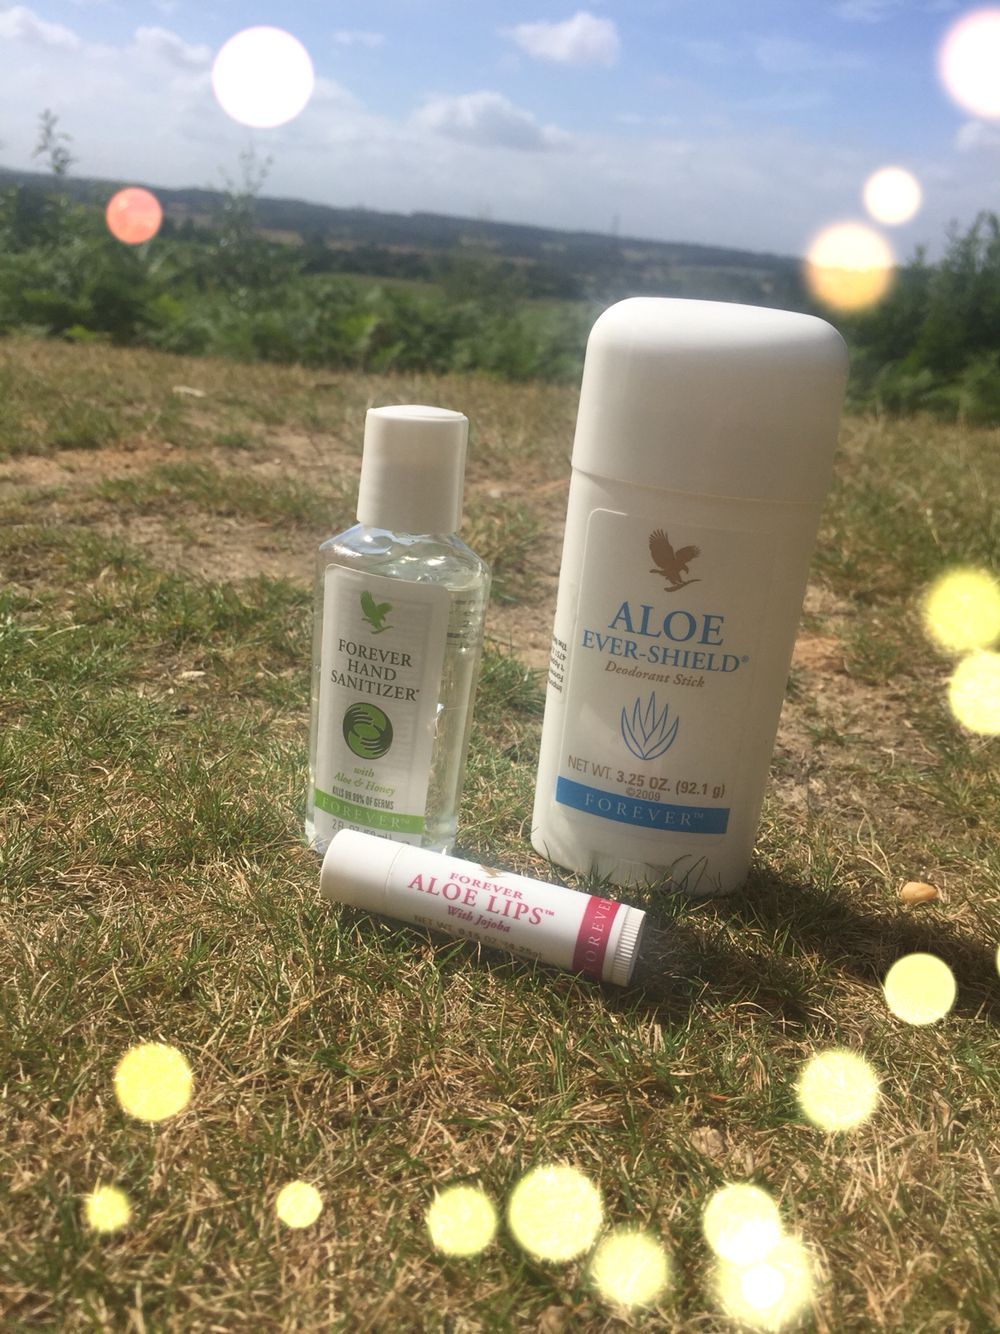 Handbag Essentials Aloe Lips Forever Hand Sanitizer Aloe Ever